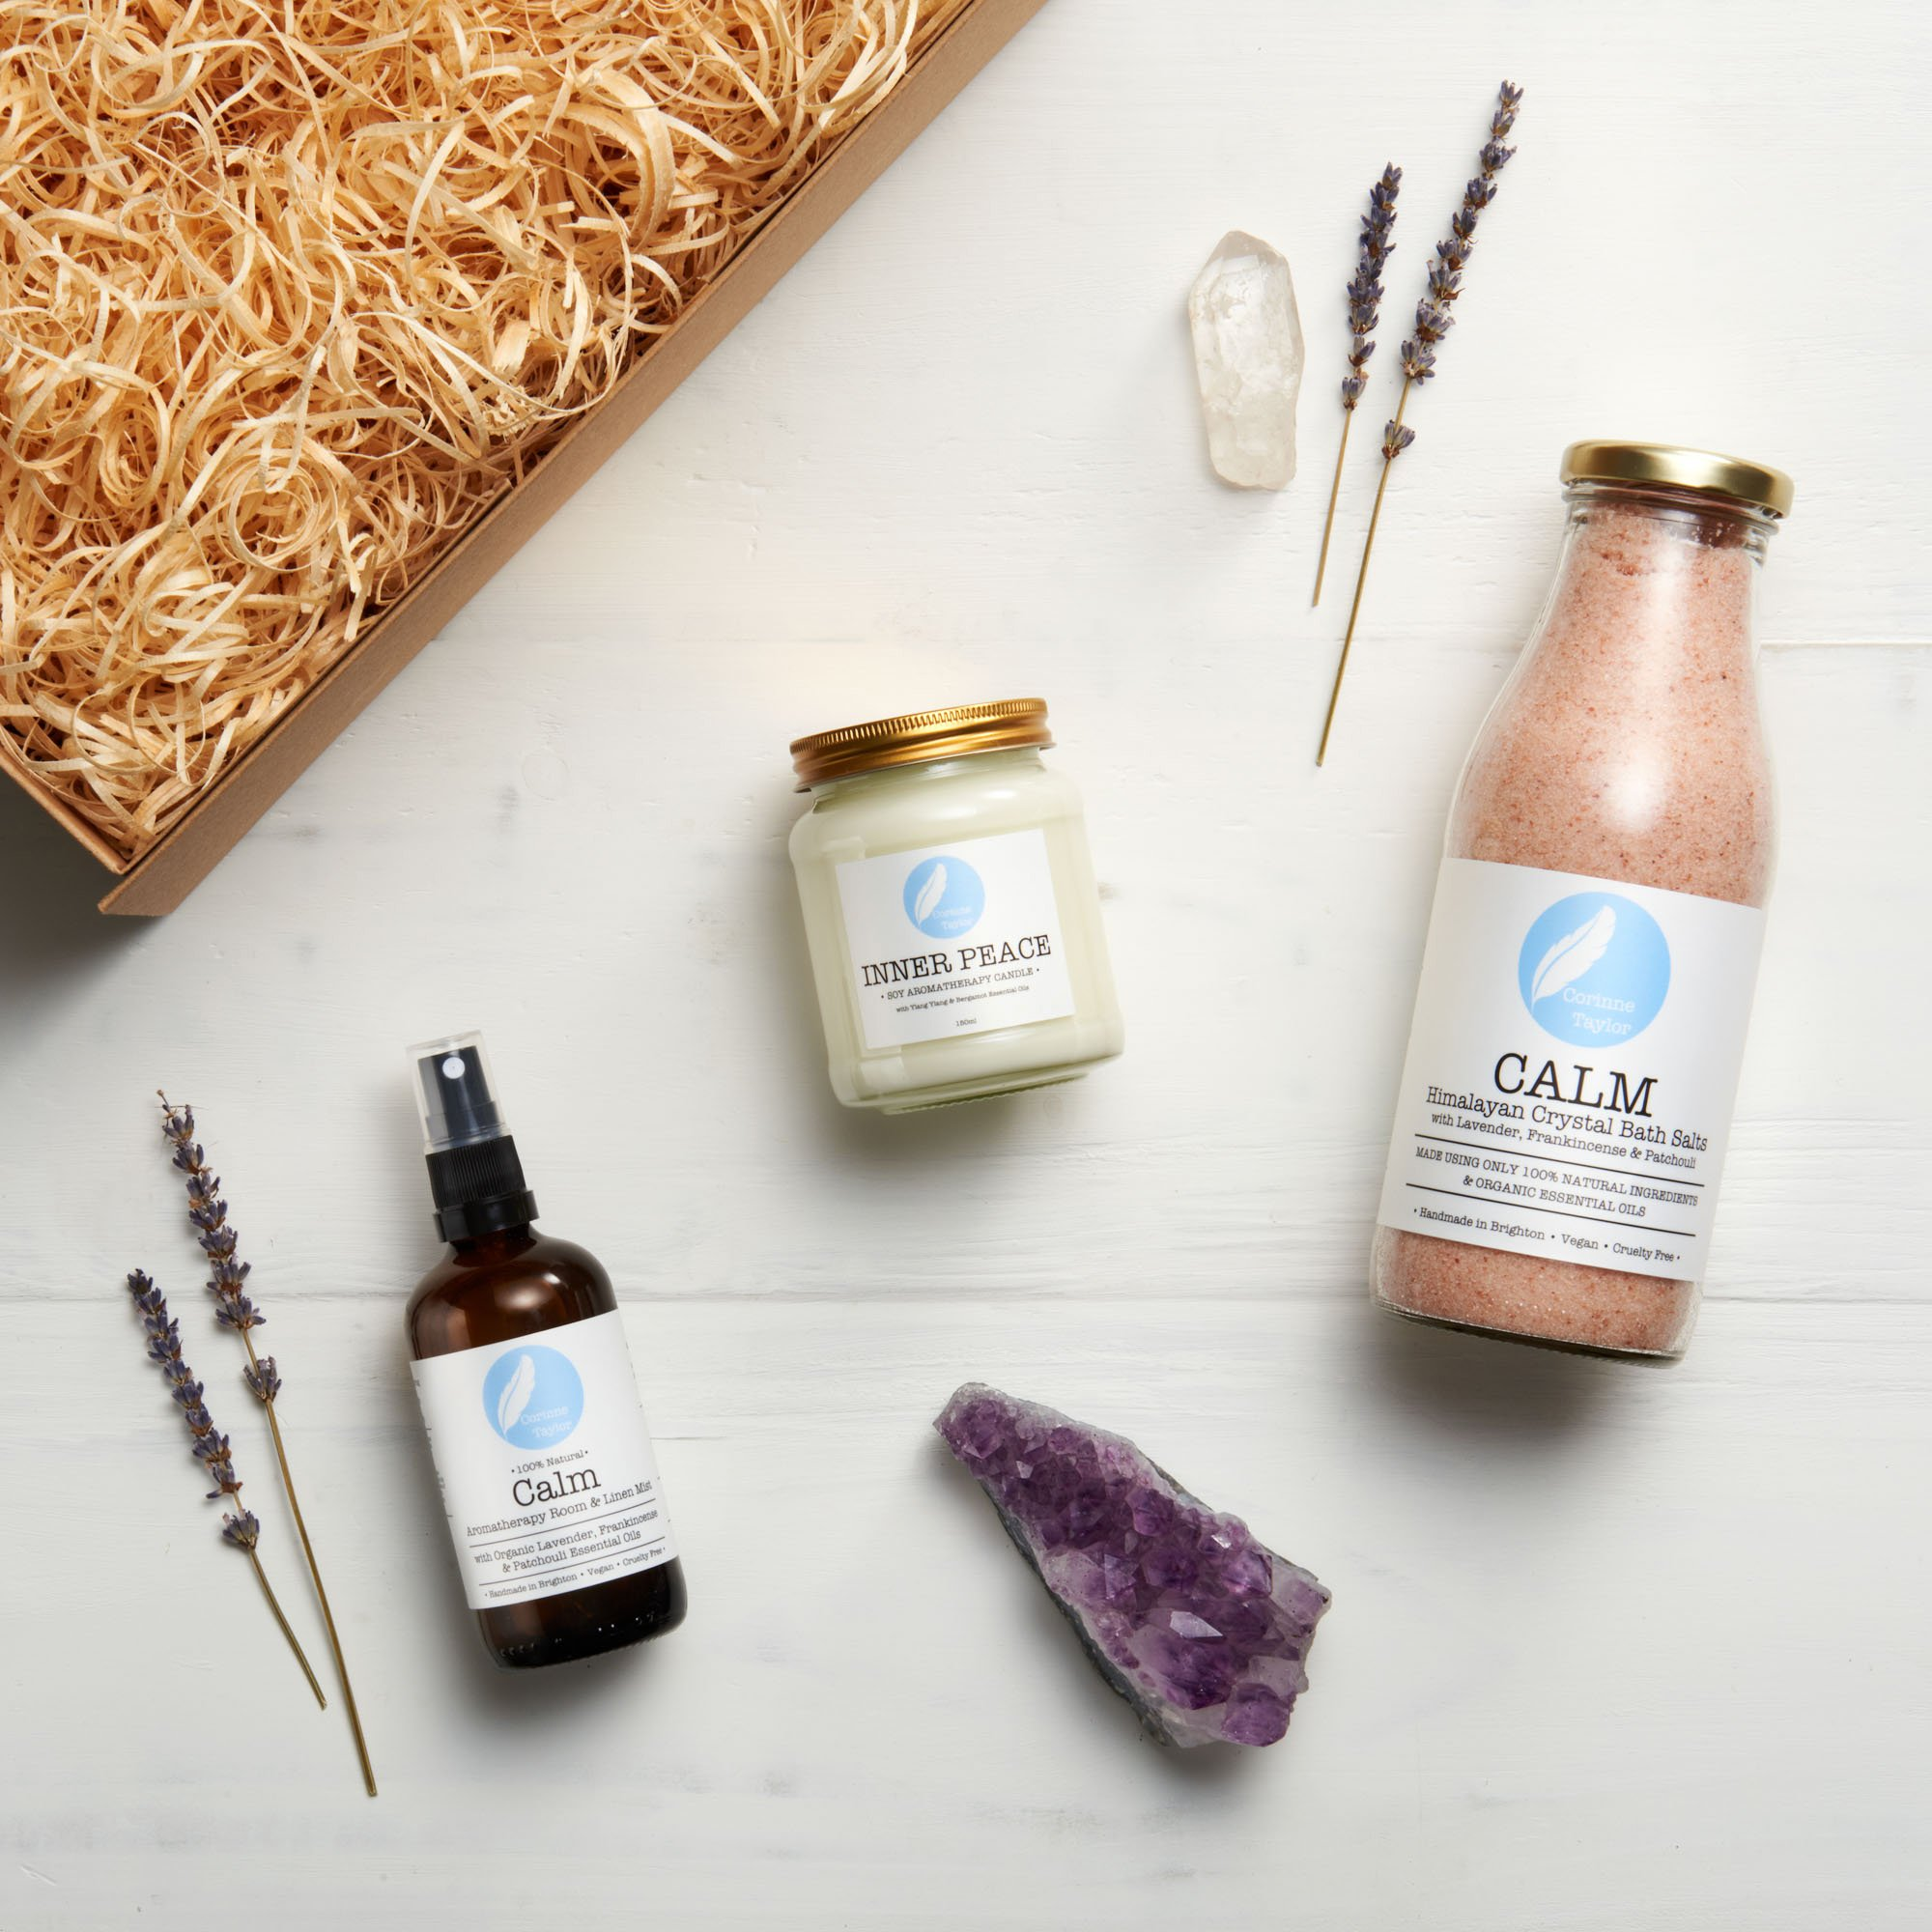 Chill Out Aromatherapy Collection Gift Set from Corinne Taylor